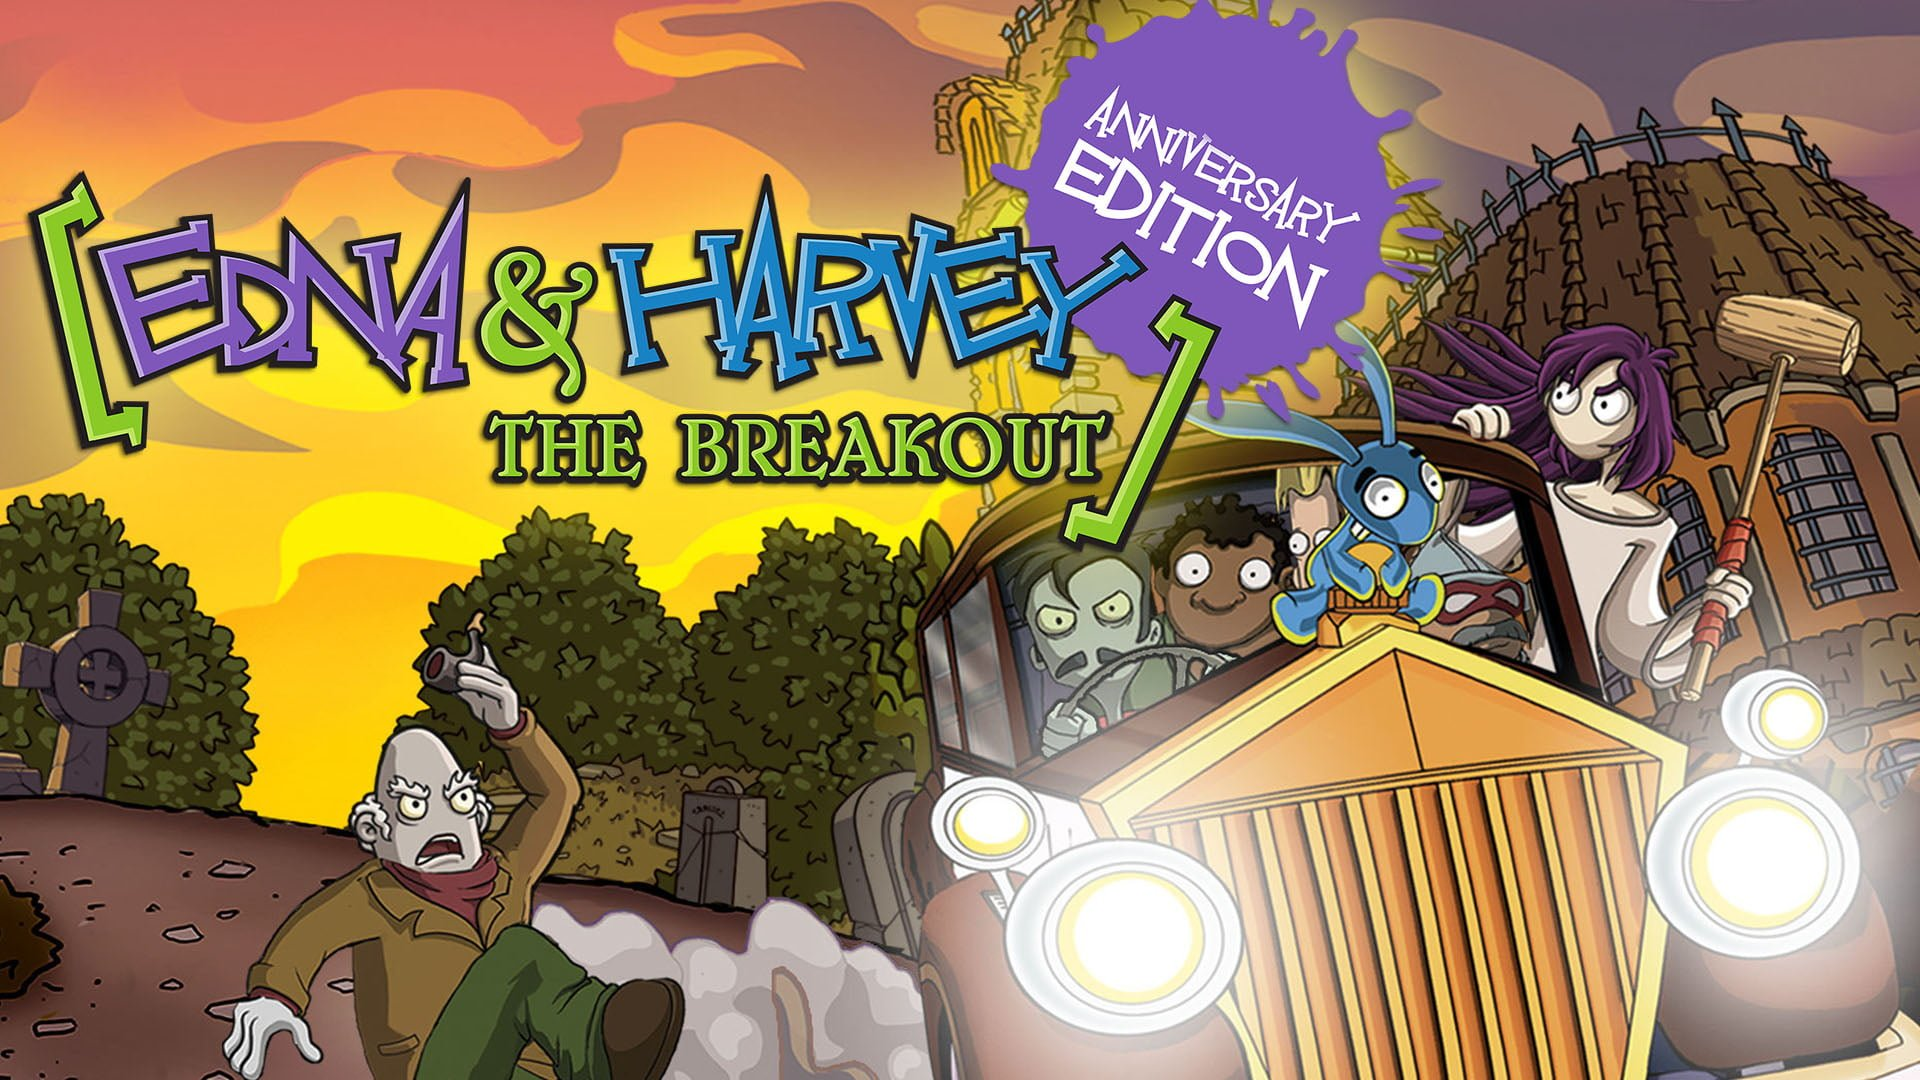 Edna & Harvey: The Breakout – Anniversary Edition (PS4) Review